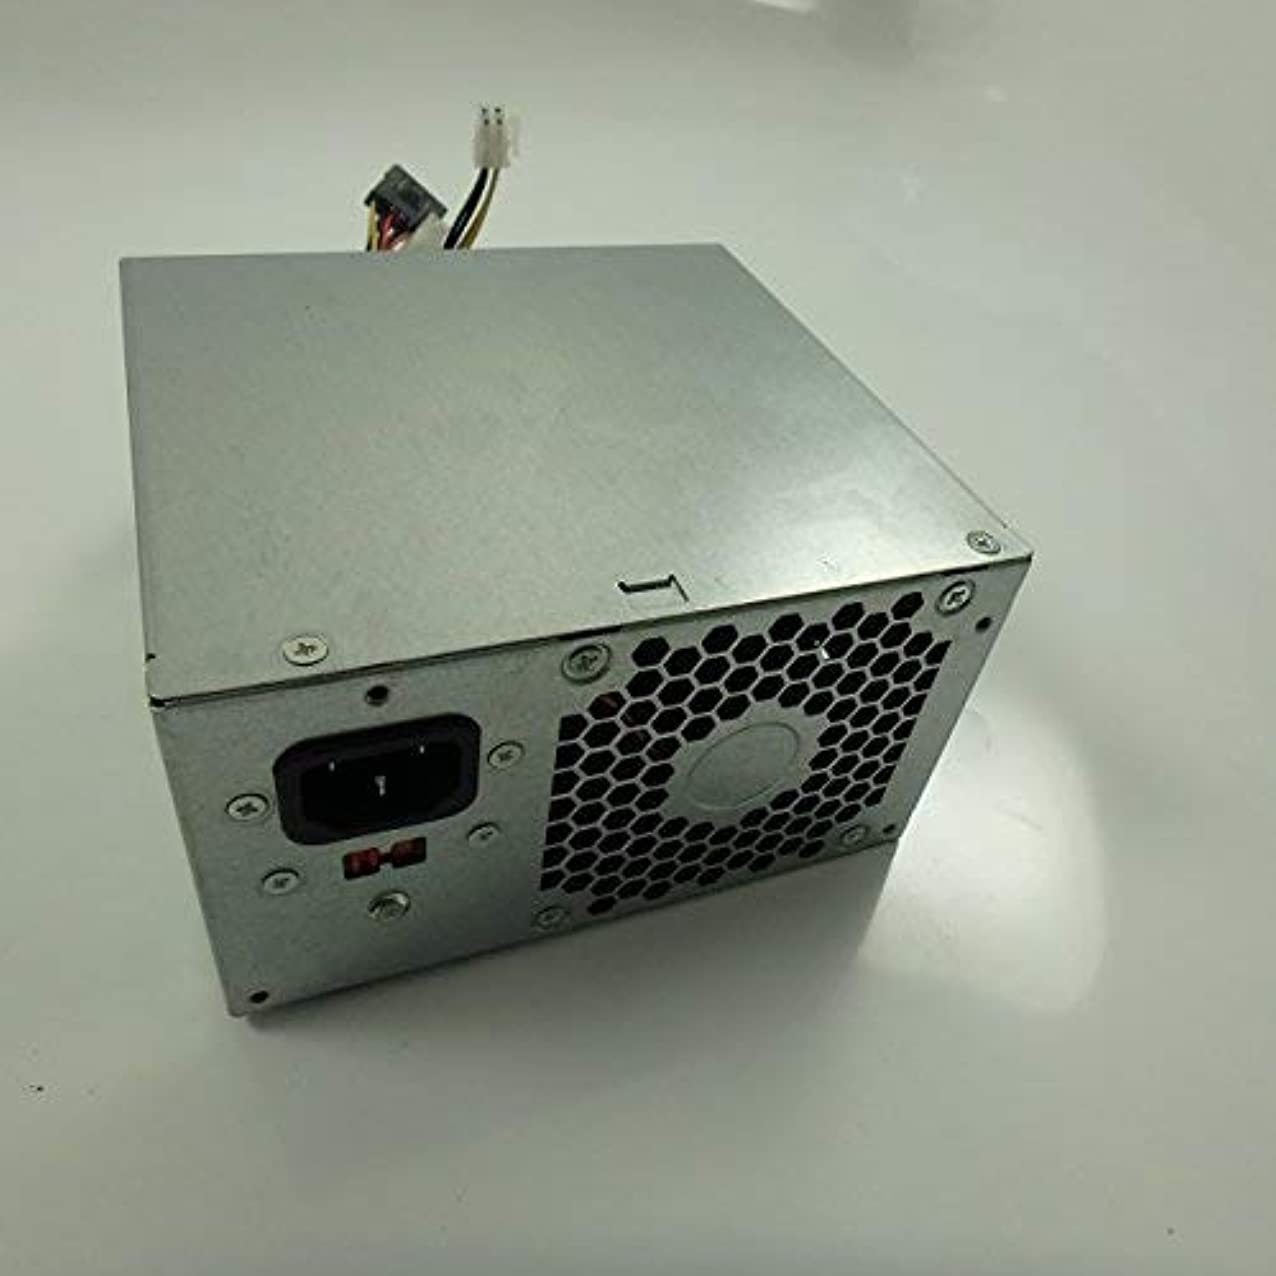 立場世界の窓前提条件HP Genuine Bestec FH-XD301MYR-1 300W Replacement Part 667893-001 Power Supply [並行輸入品]